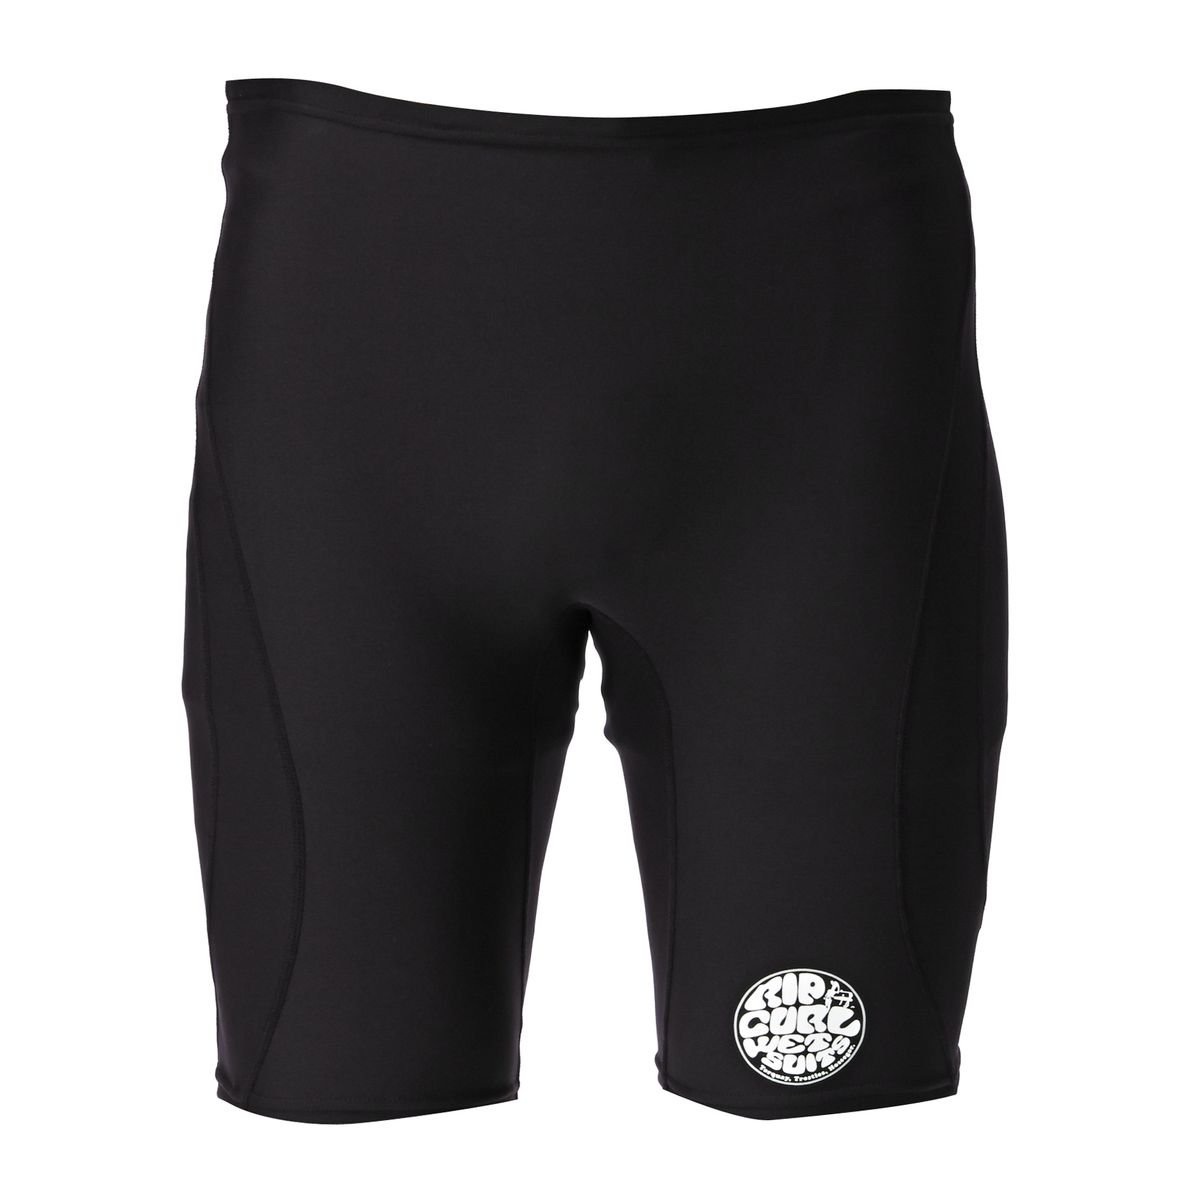 With Easy Stretch Thermal Flash Lining RIP CURL Flashbomb Polypro Sailing Boating Watersports Shorts Black